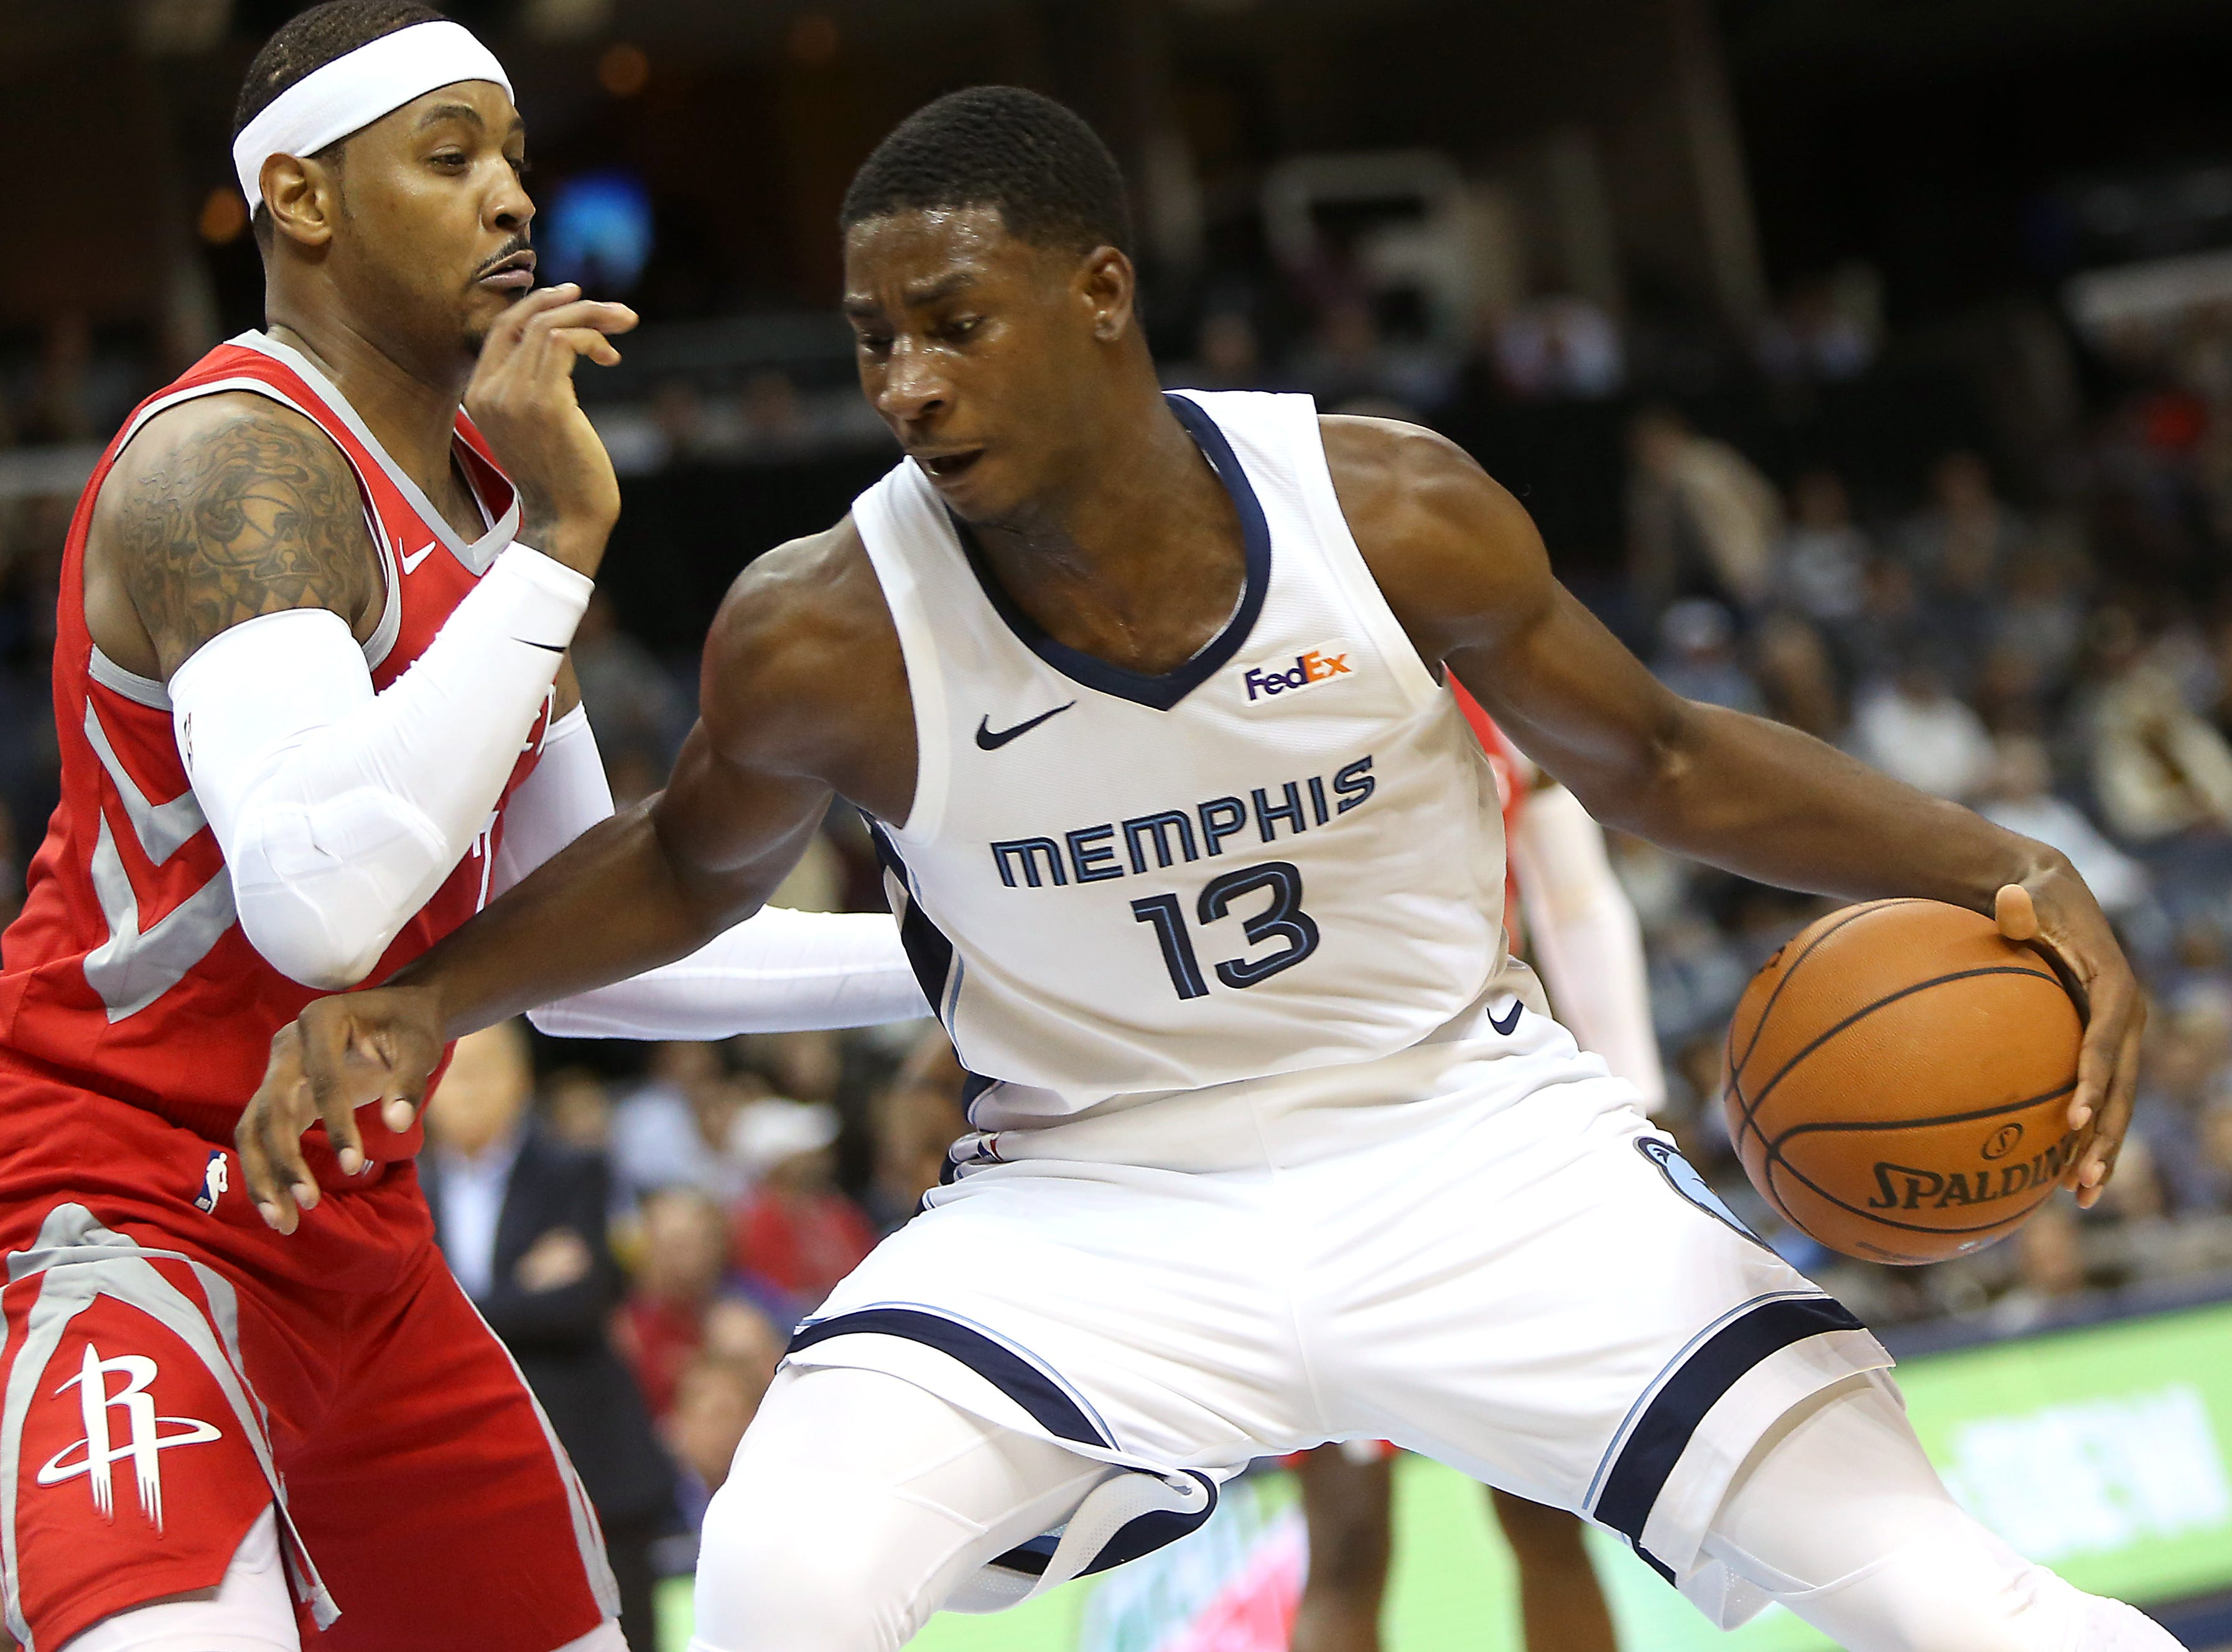 Memphis Grizzlies Jaren Jackson Jr. pounds the ball inside against Houston Rockets defender Carmelo Anthony during preseason action at the FedExForum in Memphis, Tenn., Friday, October 12, 2018.